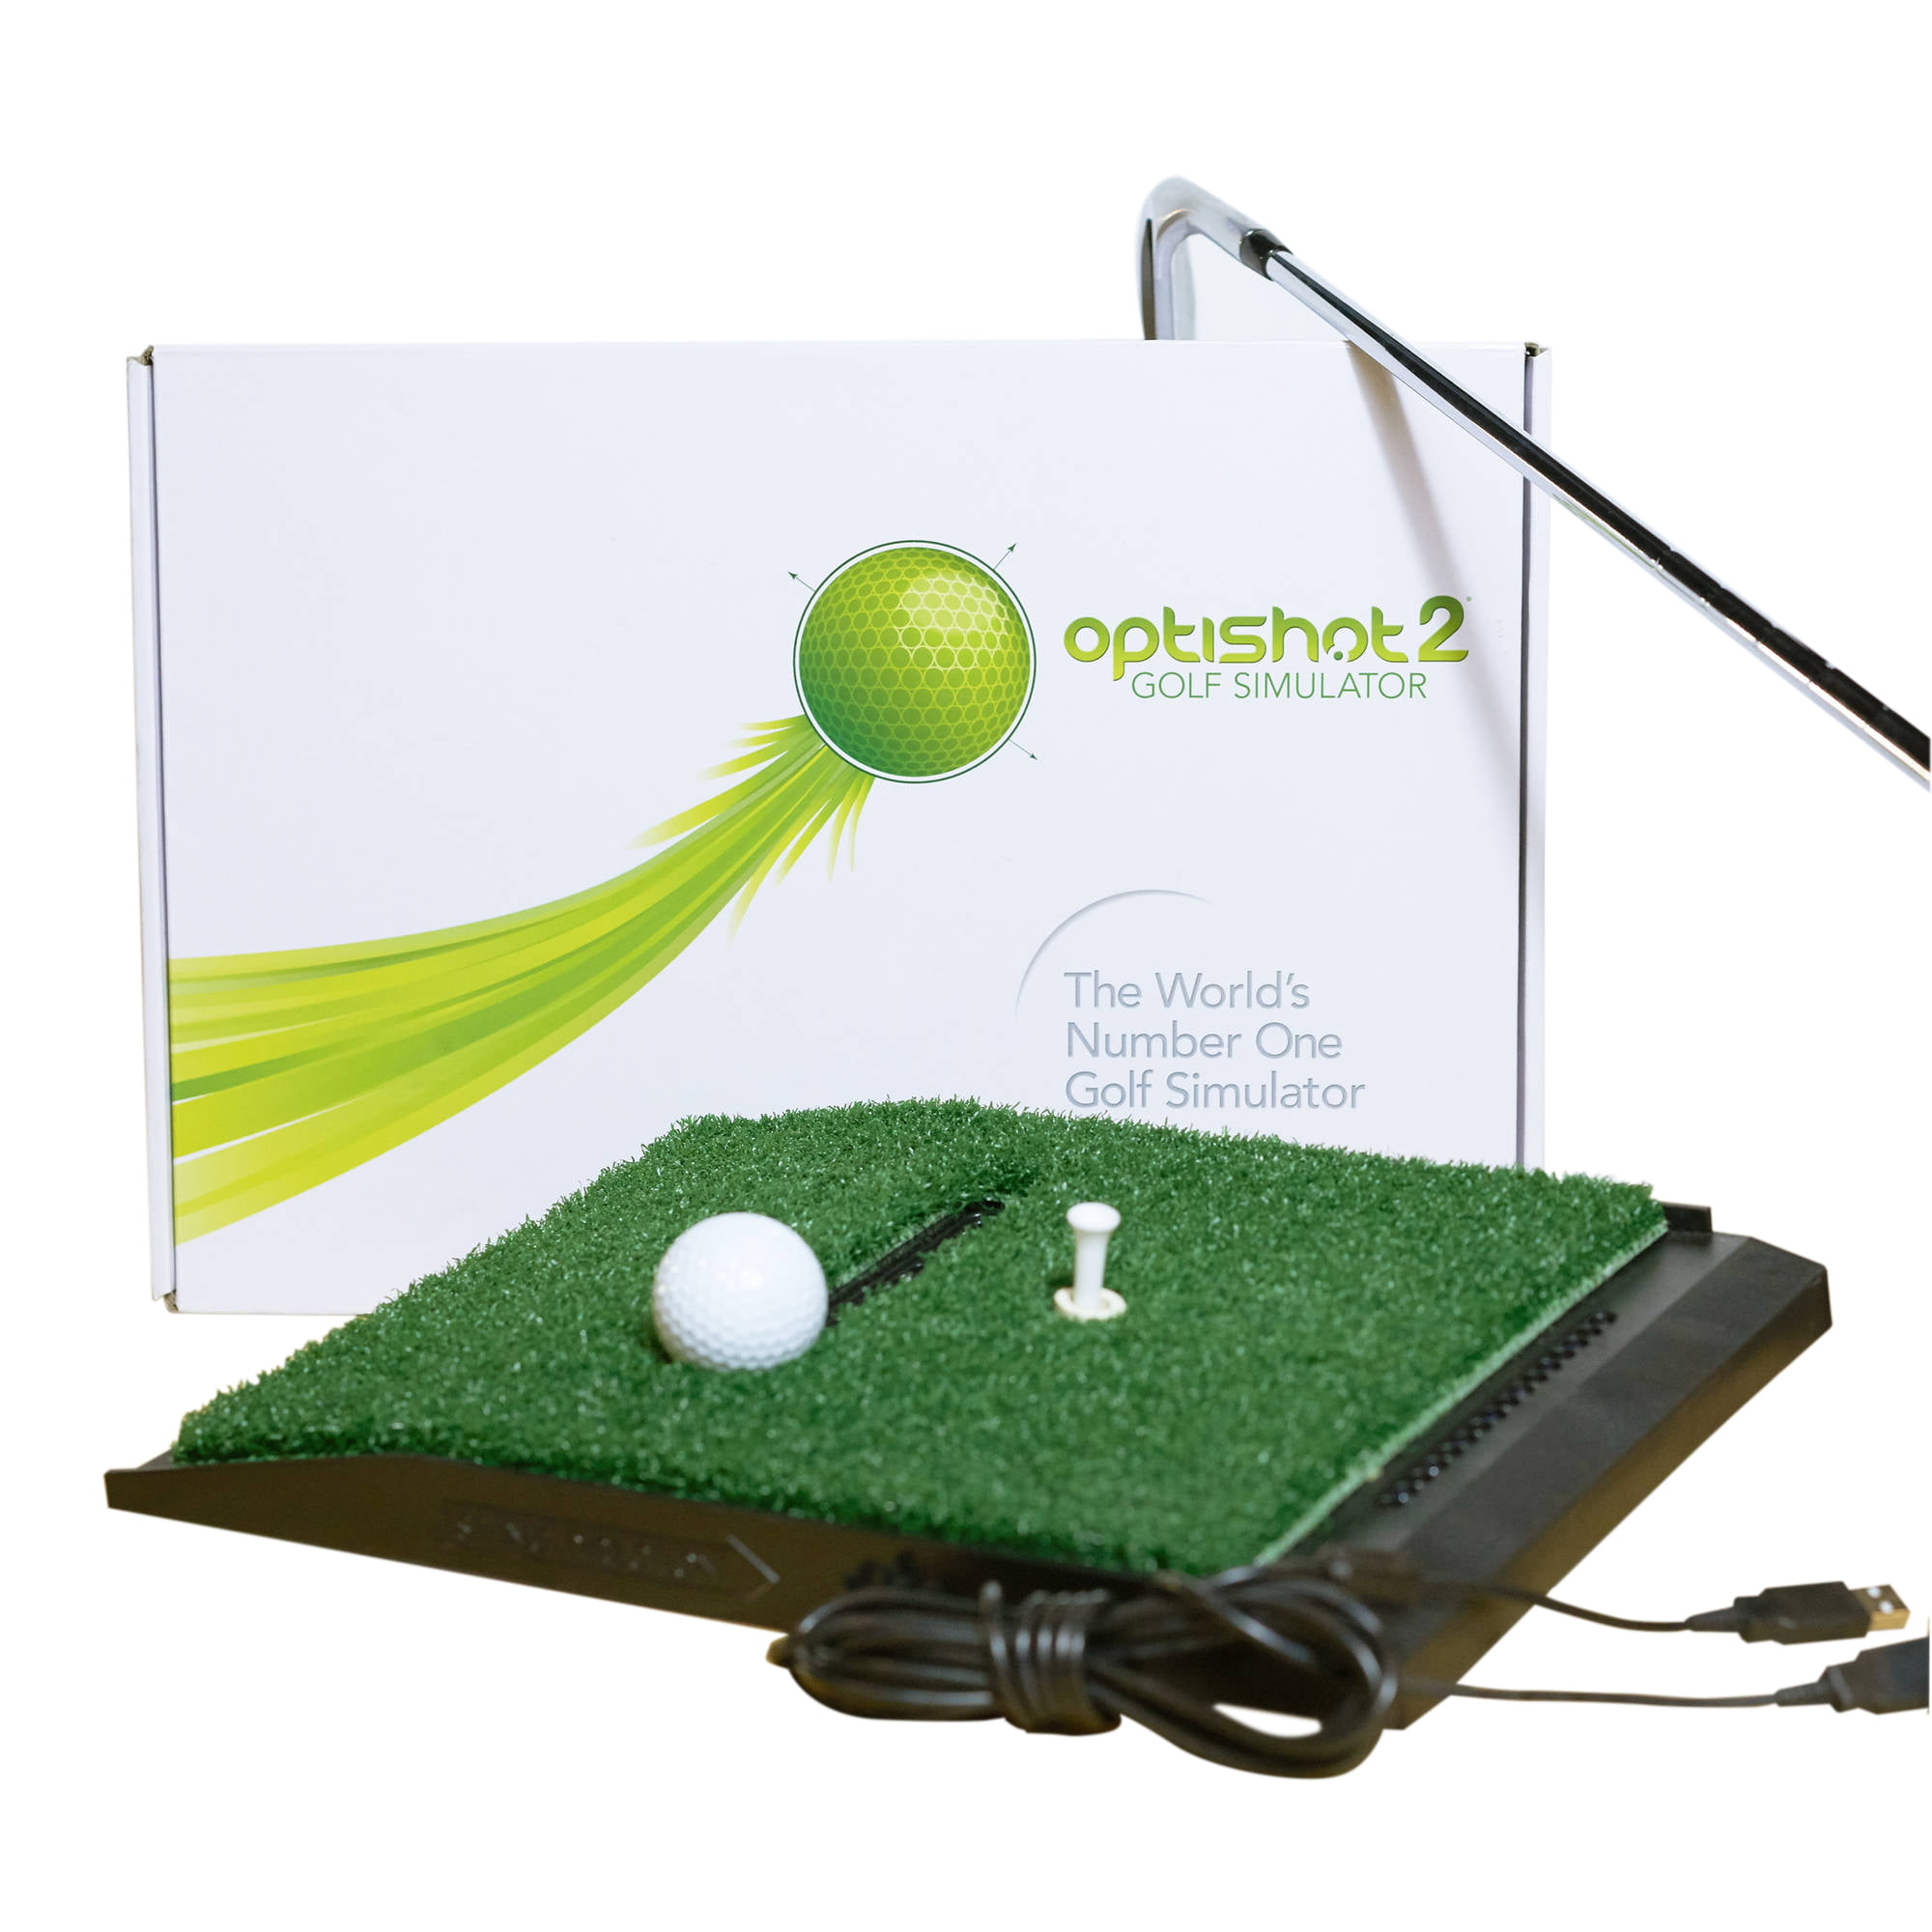 OptiShot2 Golf Simulator by Optishot